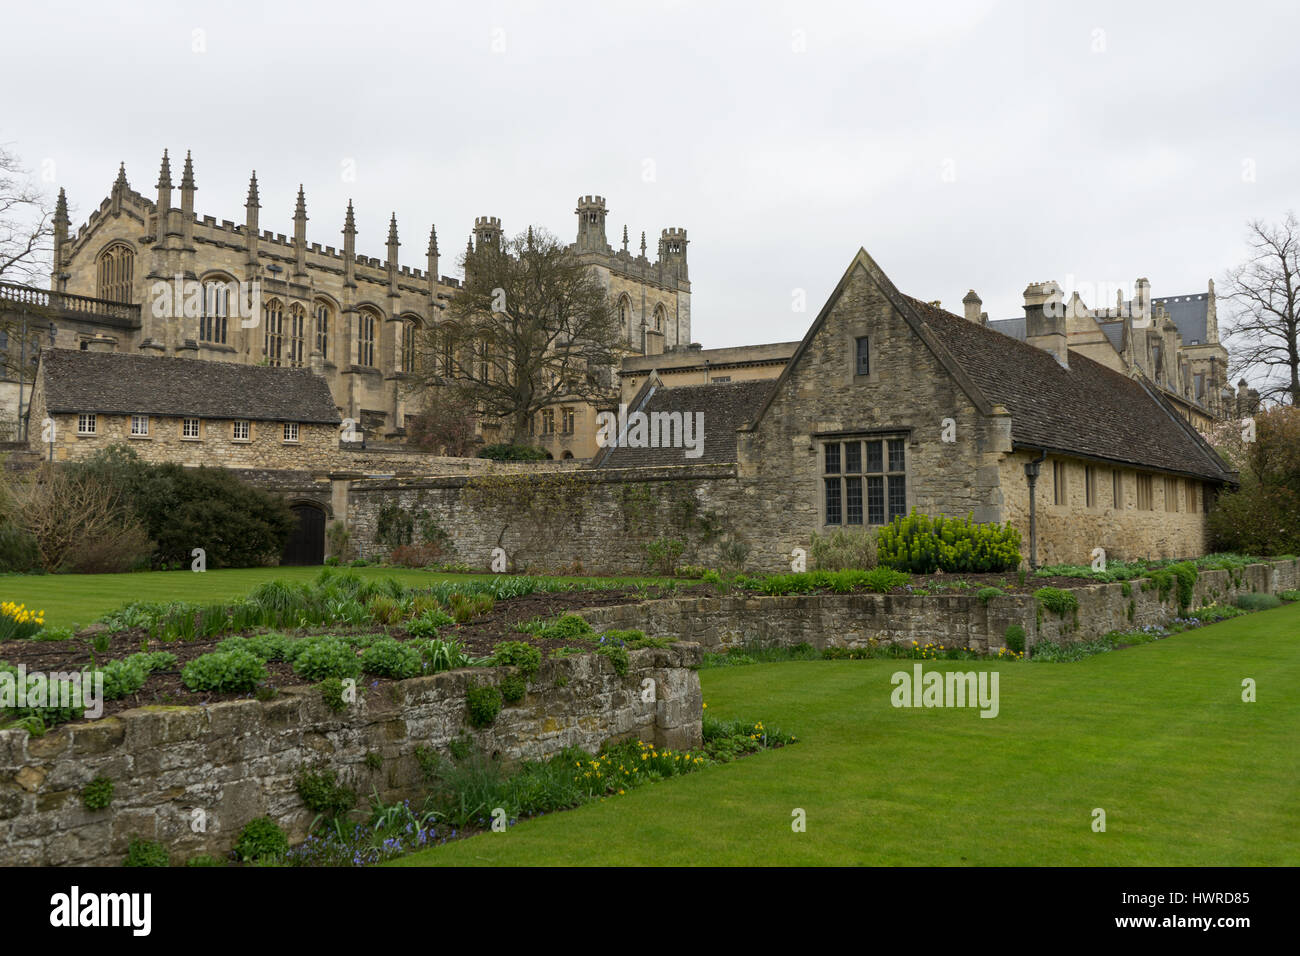 Glorious Cotswold buildings throughout the ages. - Stock Image